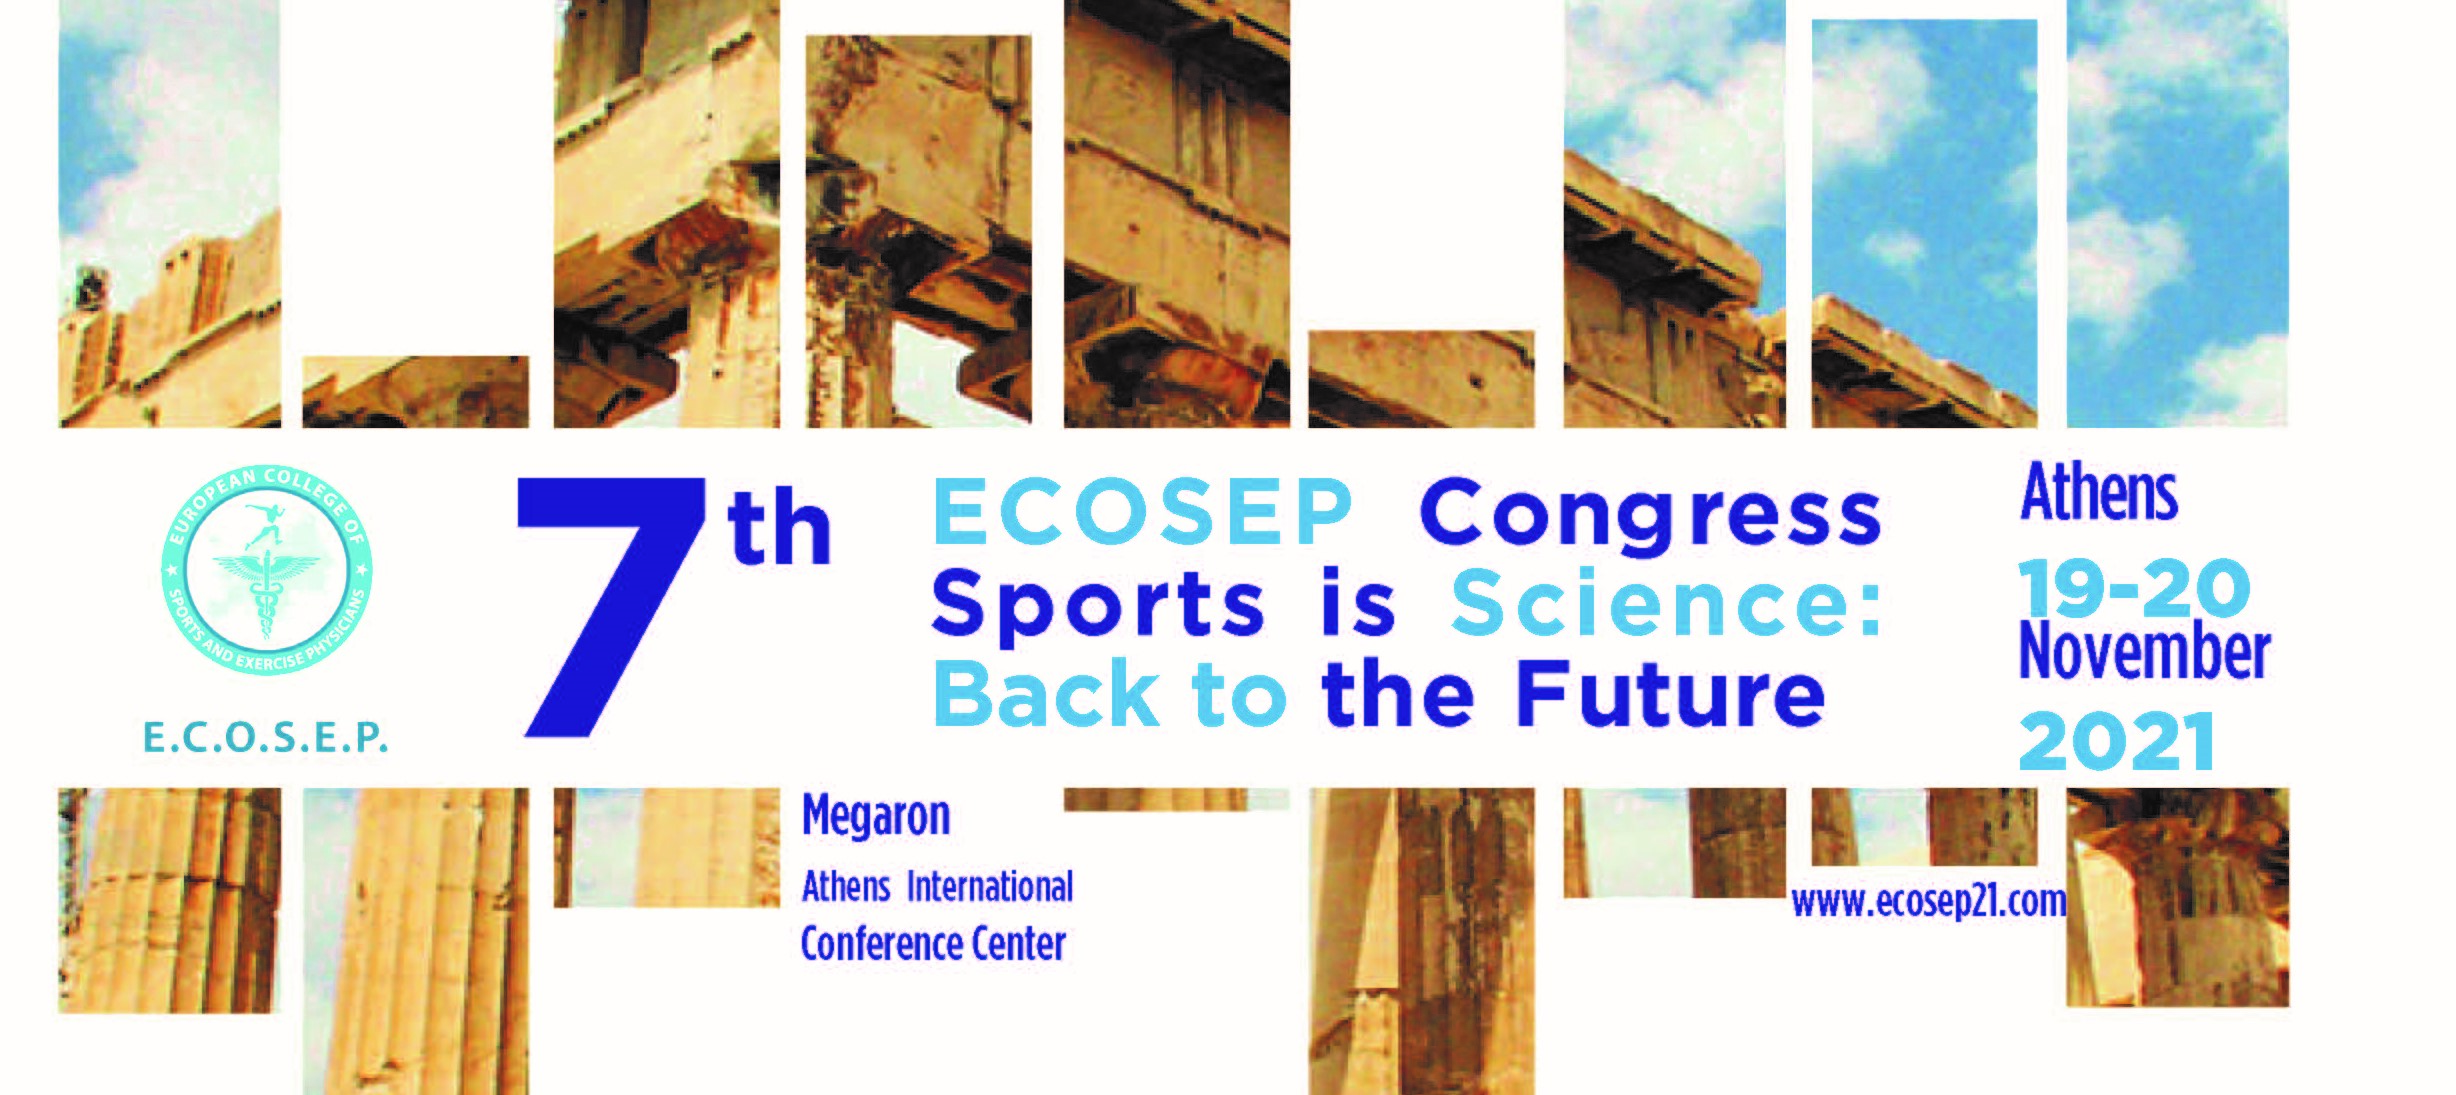 7th ECOSEP Congress Sports Is Science: Back To The Future